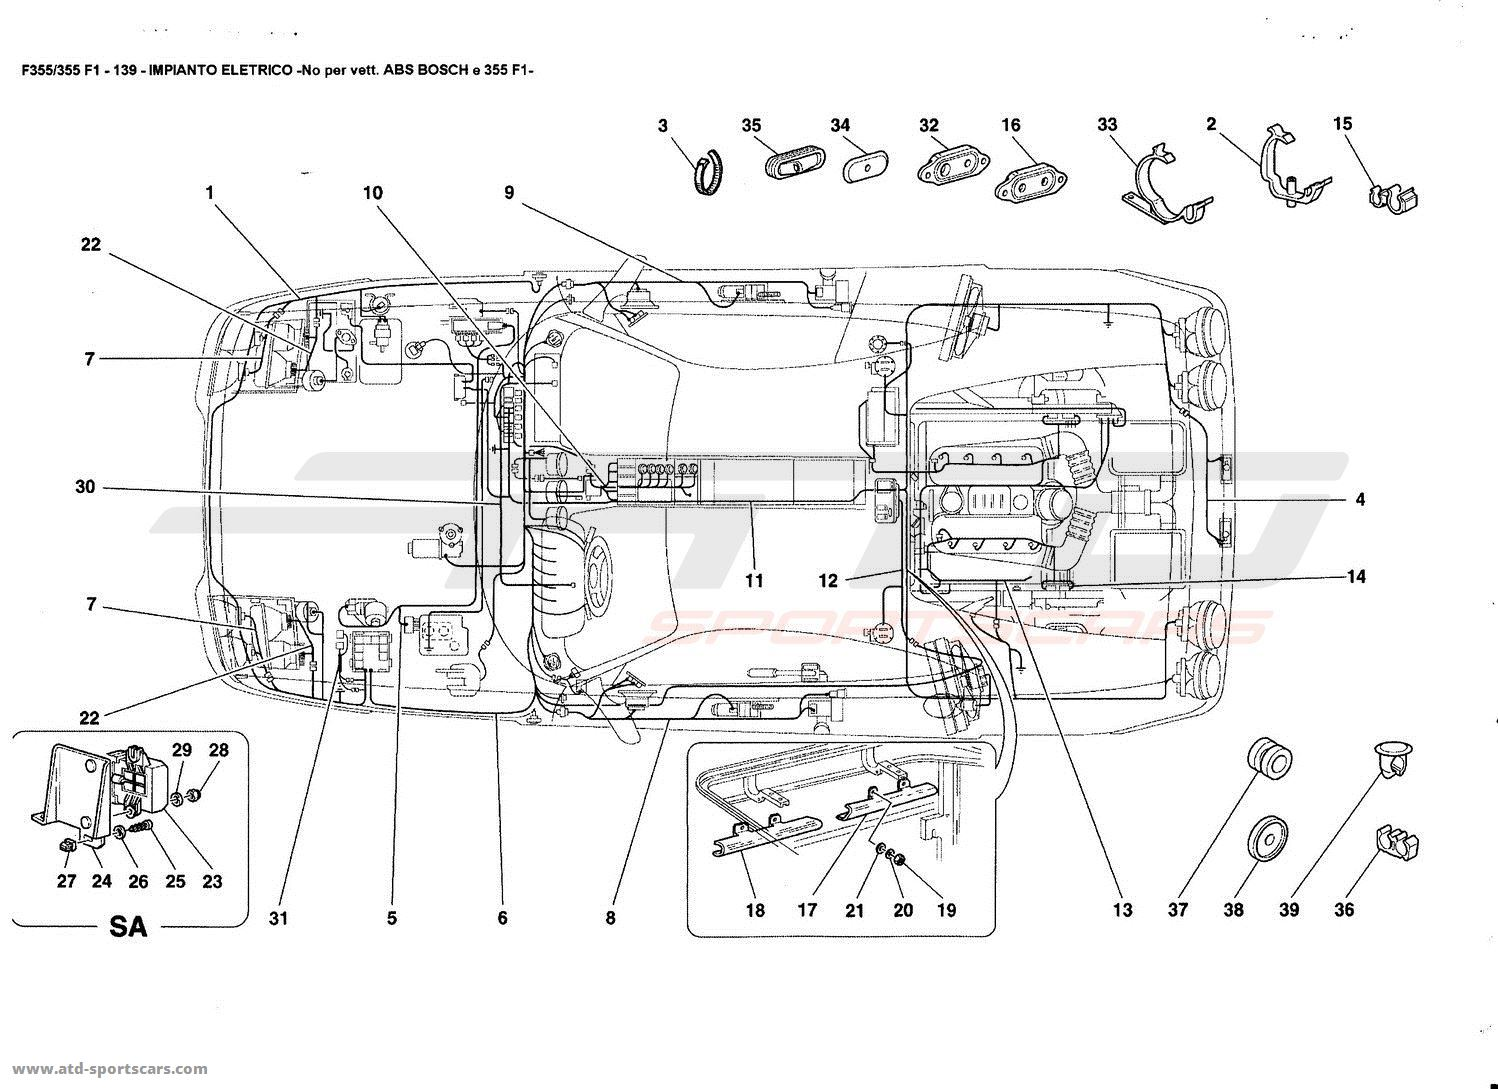 Swell Ferrari F355 5 2 F1 Electrical Parts At Atd Sportscars Atd Wiring Cloud Pimpapsuggs Outletorg